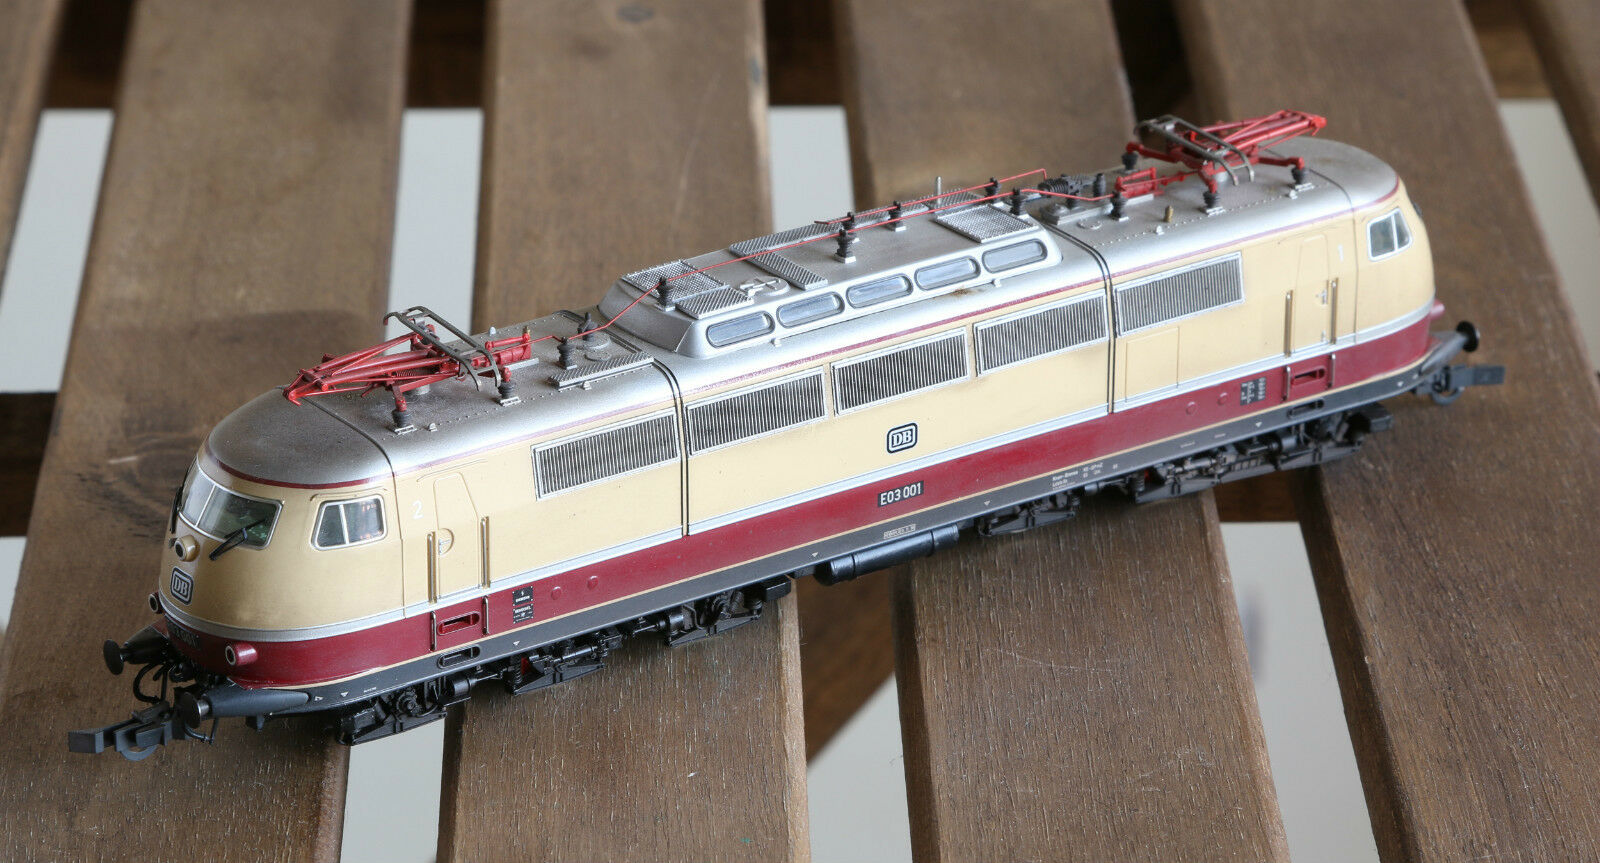 Roco 63747 Professional Museumsedition E03 001,H0, DCC w/sound, OVP